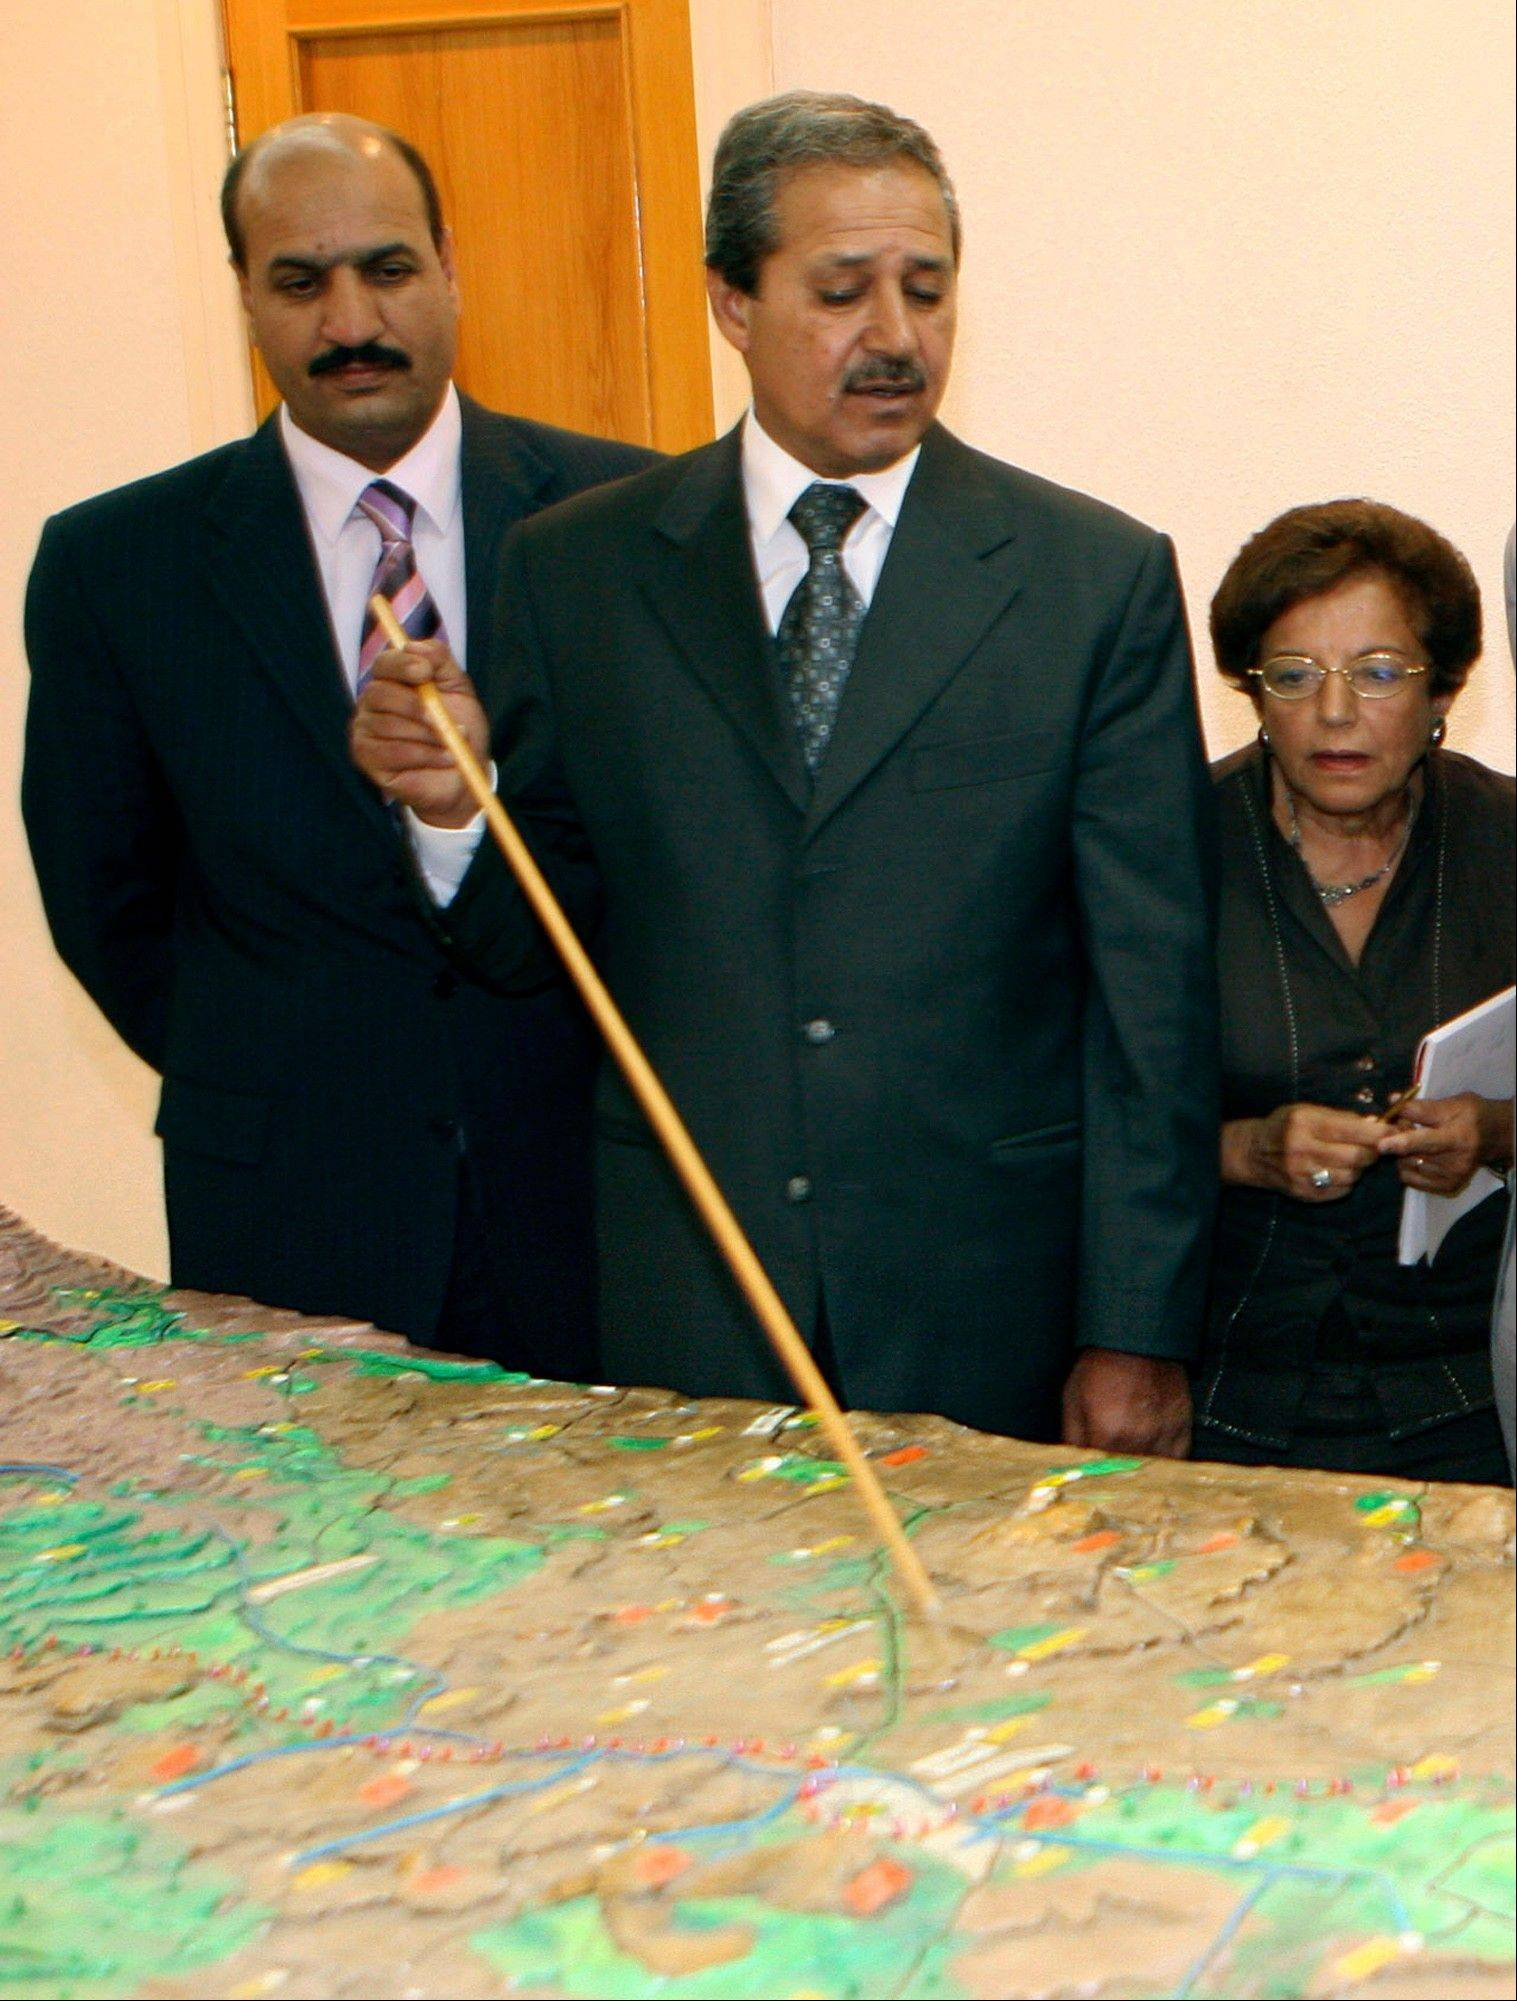 Nawaf Fares, center, governor of the Quneitra, Syria, briefs a U.N. delegation visiting the city of Quneitra in the Golan Heights to investigate Israeli practices in occupied Arab lands. Fares was named Syria�s ambassador to Iraq in September, 2008, and became the highest ranking diplomat to defect from President Bashar Assad�s regime on Wednesday. He dismissed the main international plan seeking to stop the violence in his country, saying Thursday that nothing short of Assad�s ouster is acceptable.